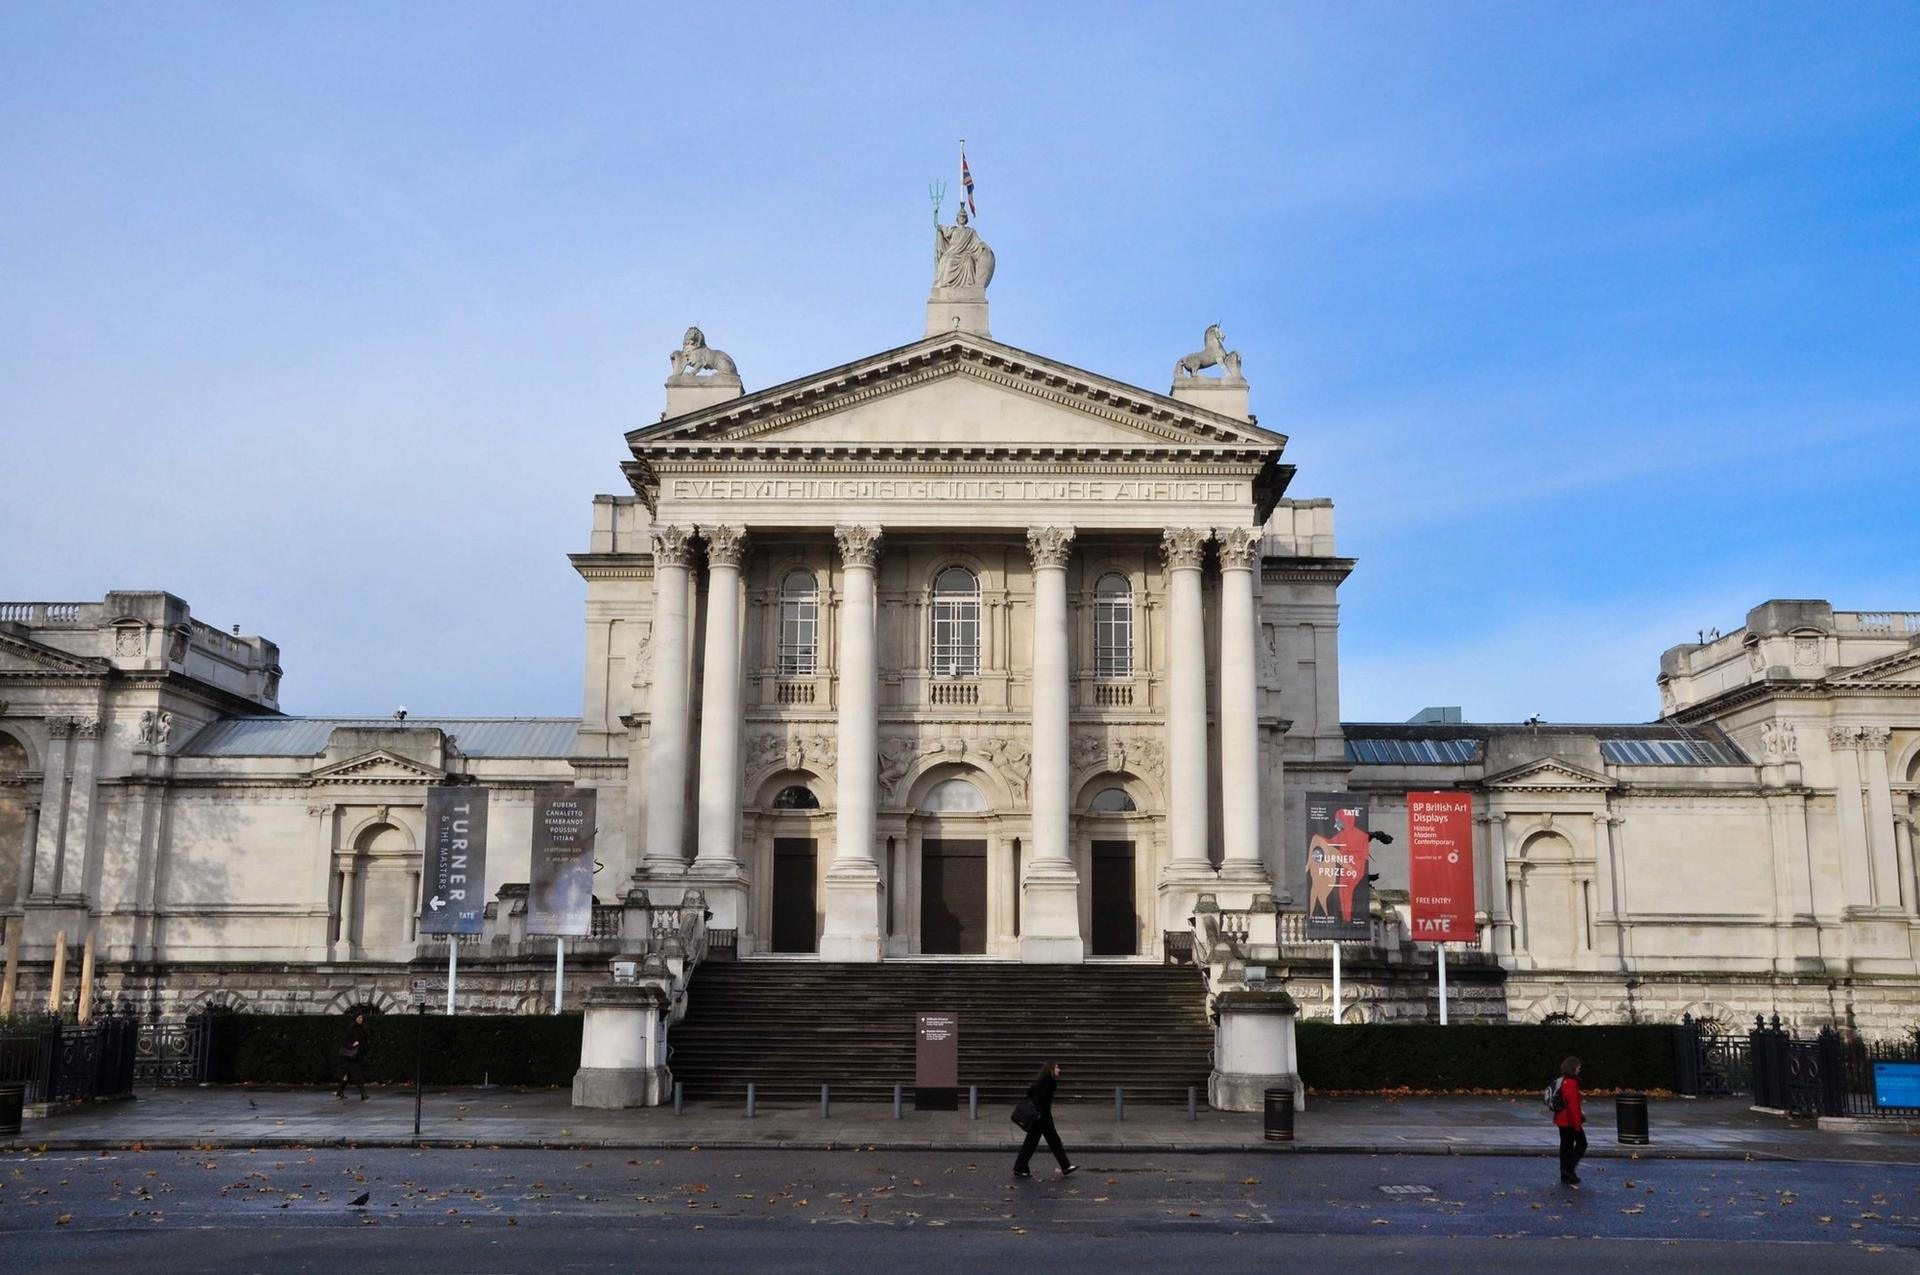 The Turner Prize exhibition was due to return to Tate Britain this autumn Photo: morebyless